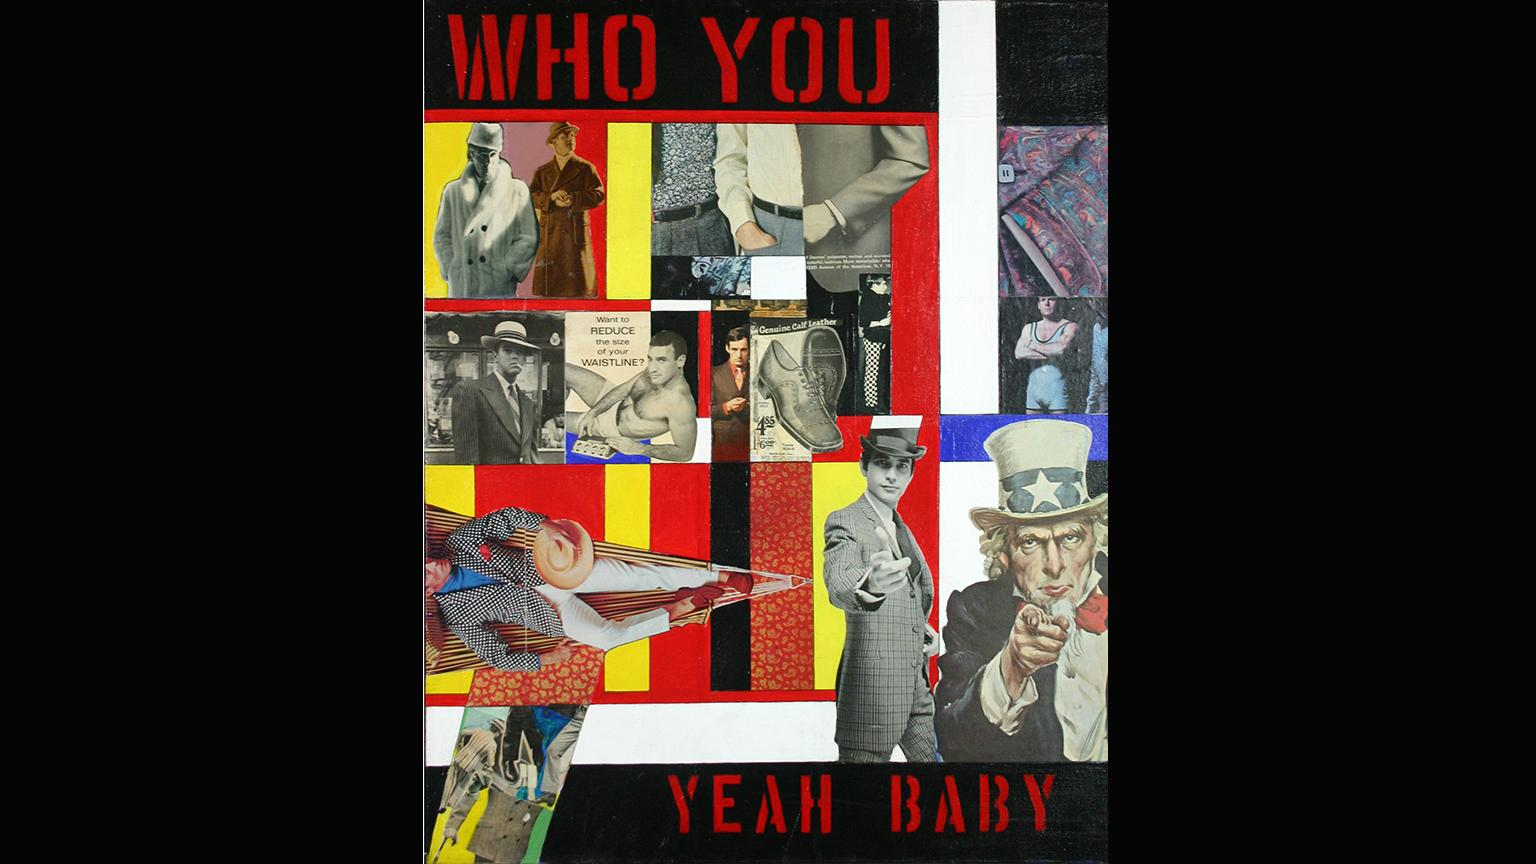 Ralph Arnold Who You/Yeah Baby c. 1968  DePaul Art Museum.  Reproduced with permission  from The Pauls Foundation